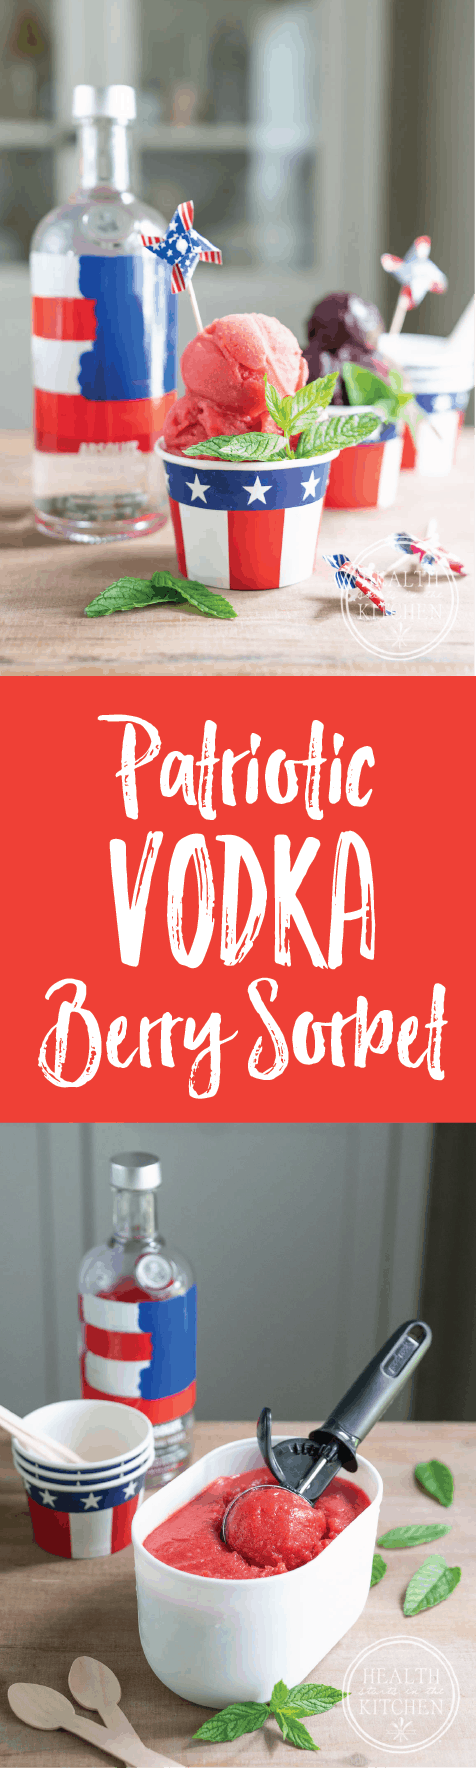 Absolut Patriotic Vodka Berry Sorbet